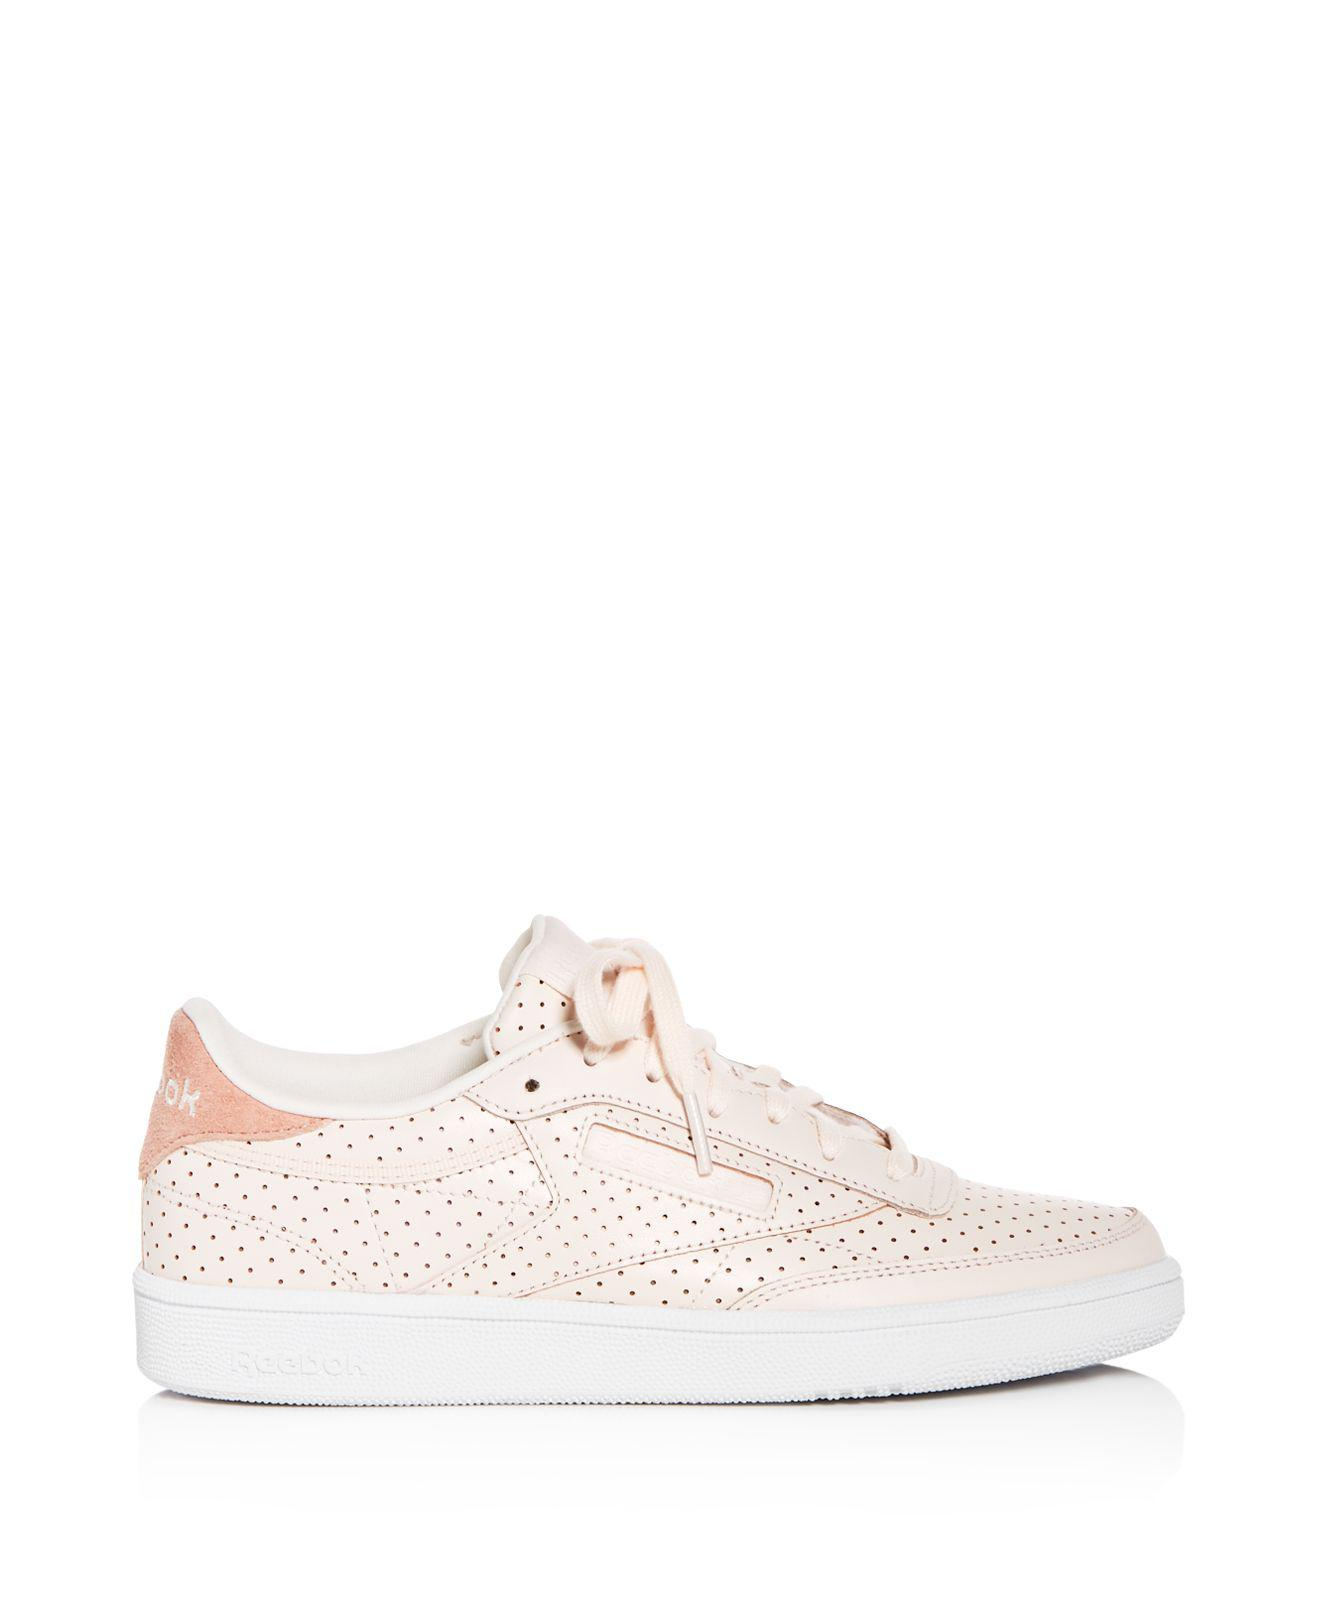 Reebok Women's Club C Popped Perforated Leather Lace Up Sneakers PKfvi6NmP